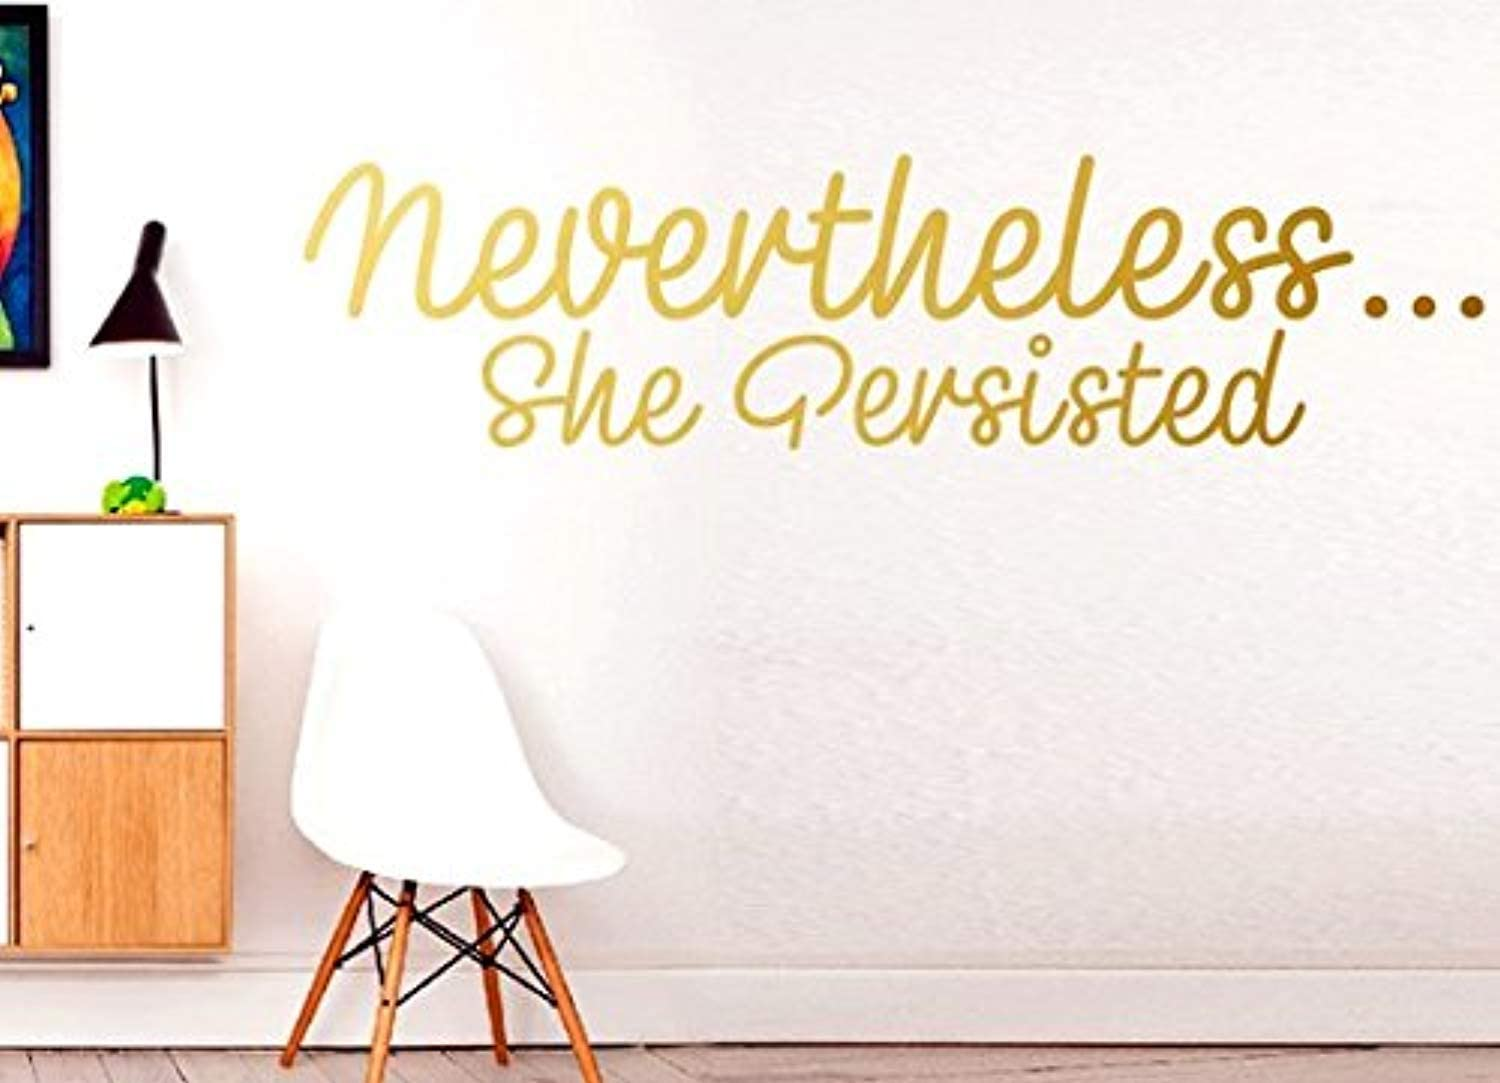 Nevertheless.she Persisted - Women Family Together Smile Love Home Life Wall stikers Inspirational Quote Motivation Decal Wall Quote Decal Stickers Wall Art Family Fun Quote Love Home